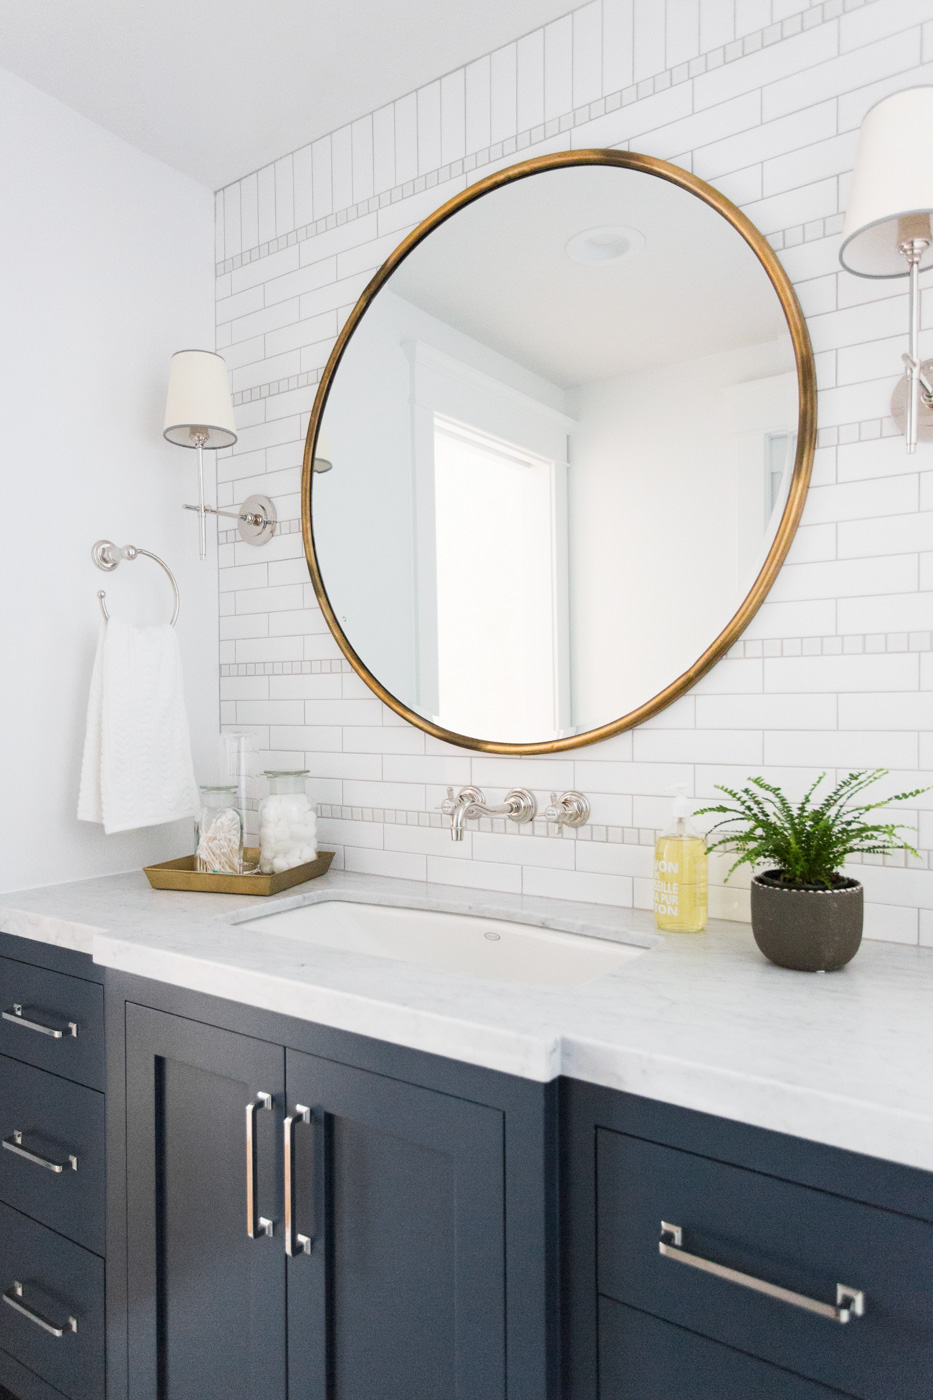 Circle mirror against white tile backsplash